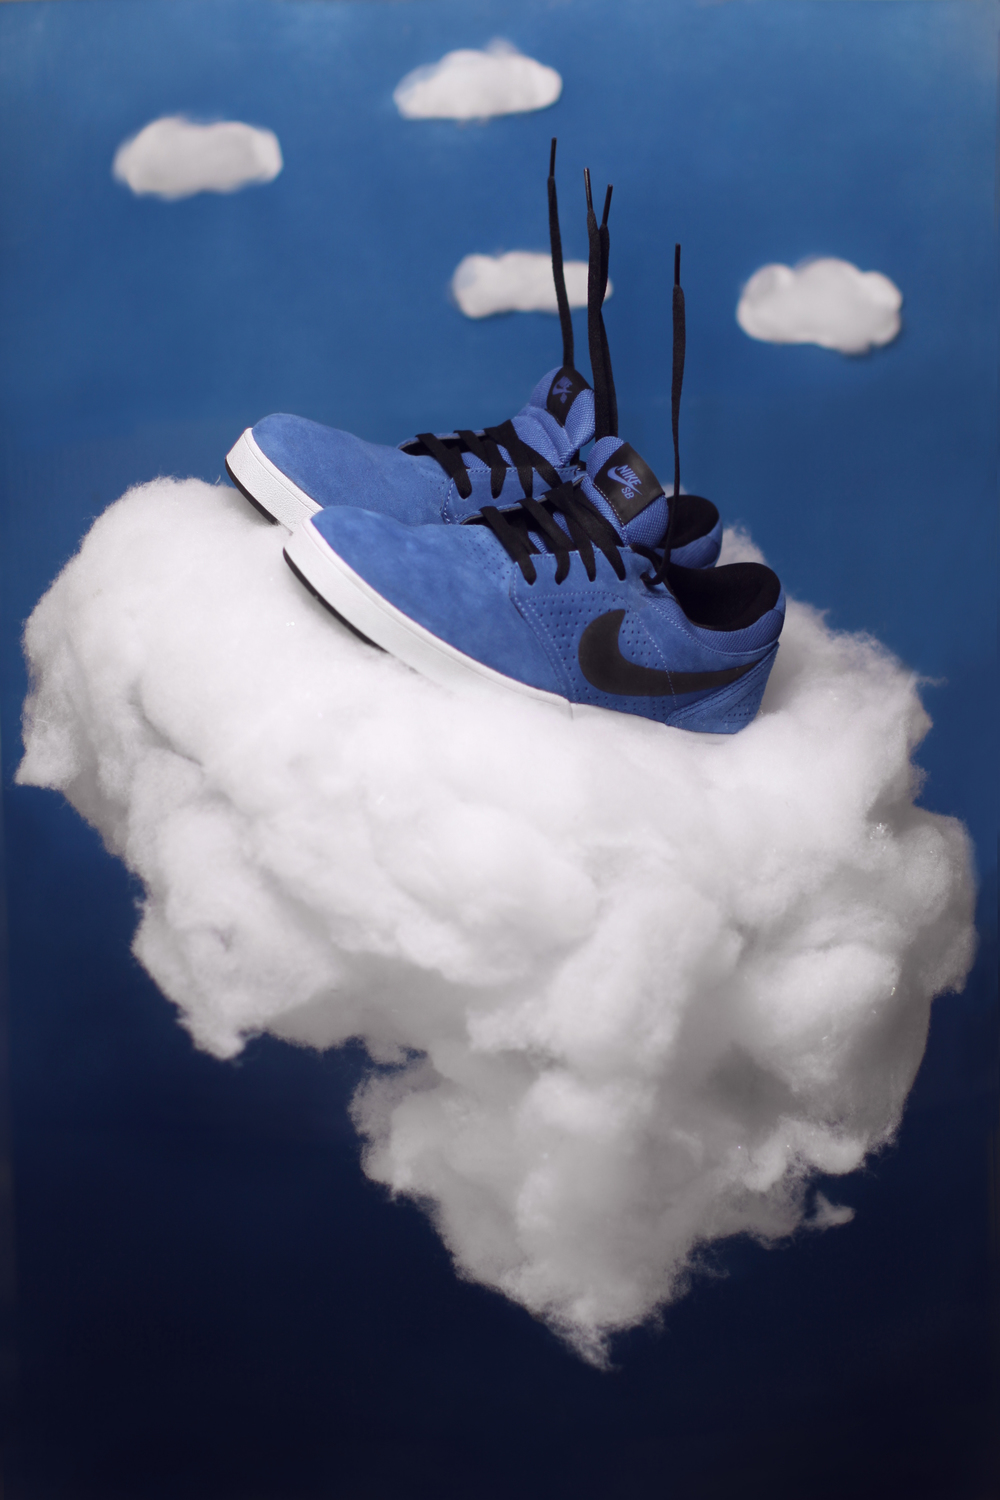 nikeclouds